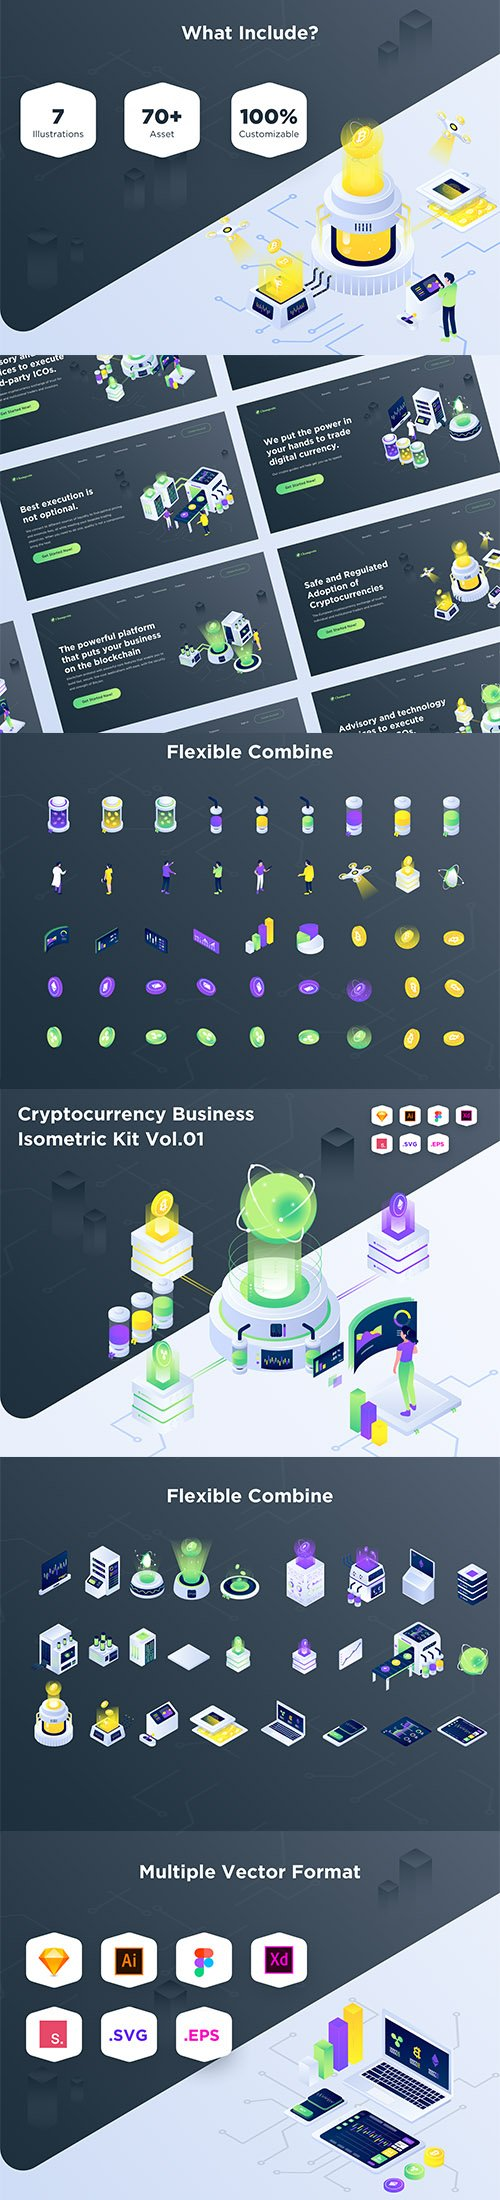 Cryptocurrency Business Isometric Vector Kit Vol.01